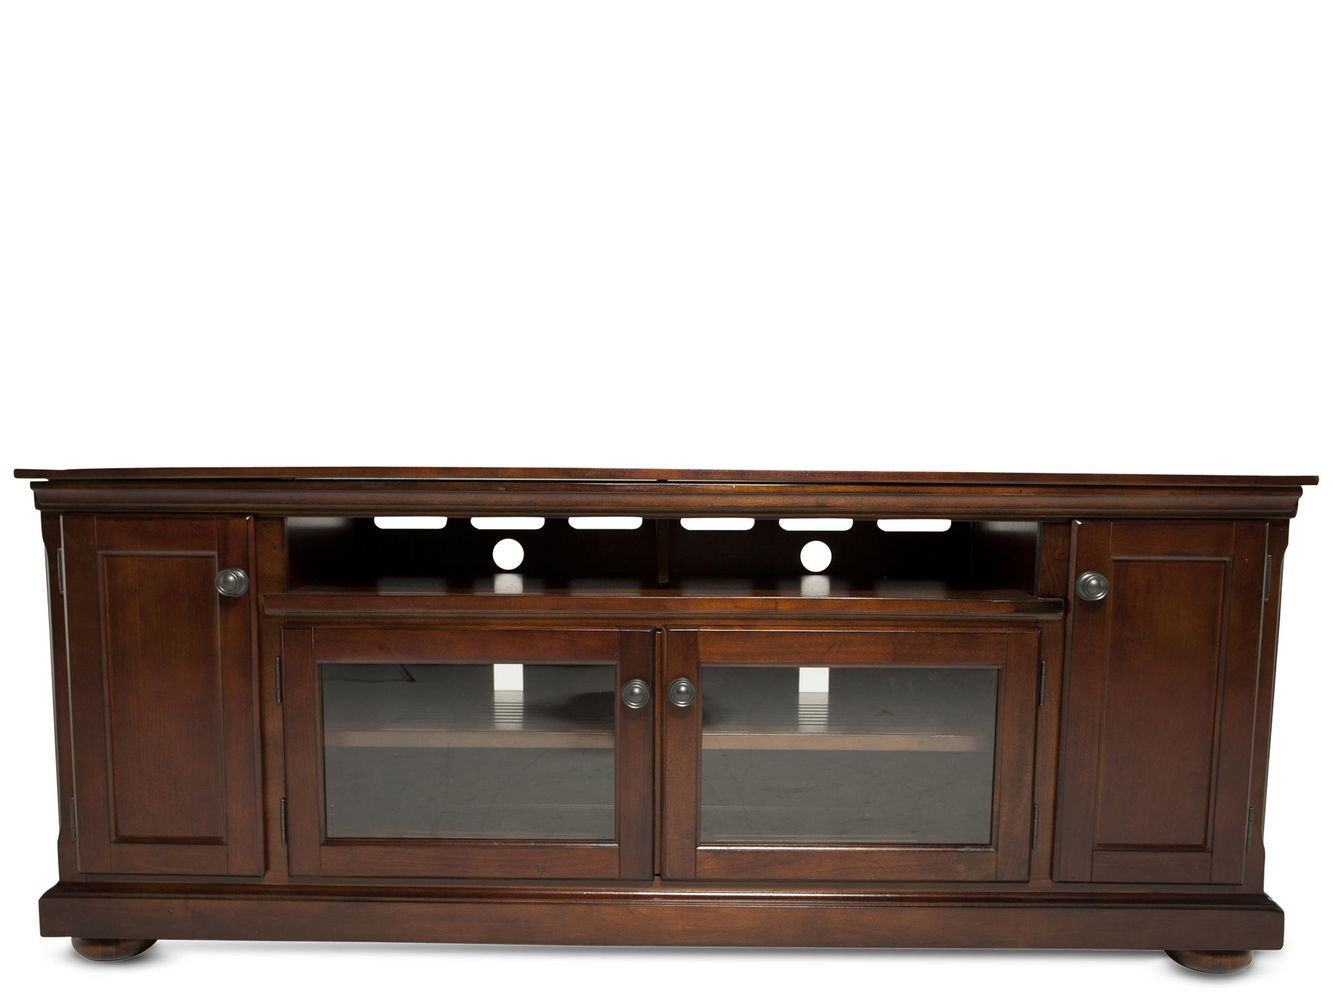 Perfect 72 Inch Tv Stand 72 Inch Tv Stand | Cakestandlady regarding Walton 72 Inch Tv Stands (Image 17 of 30)